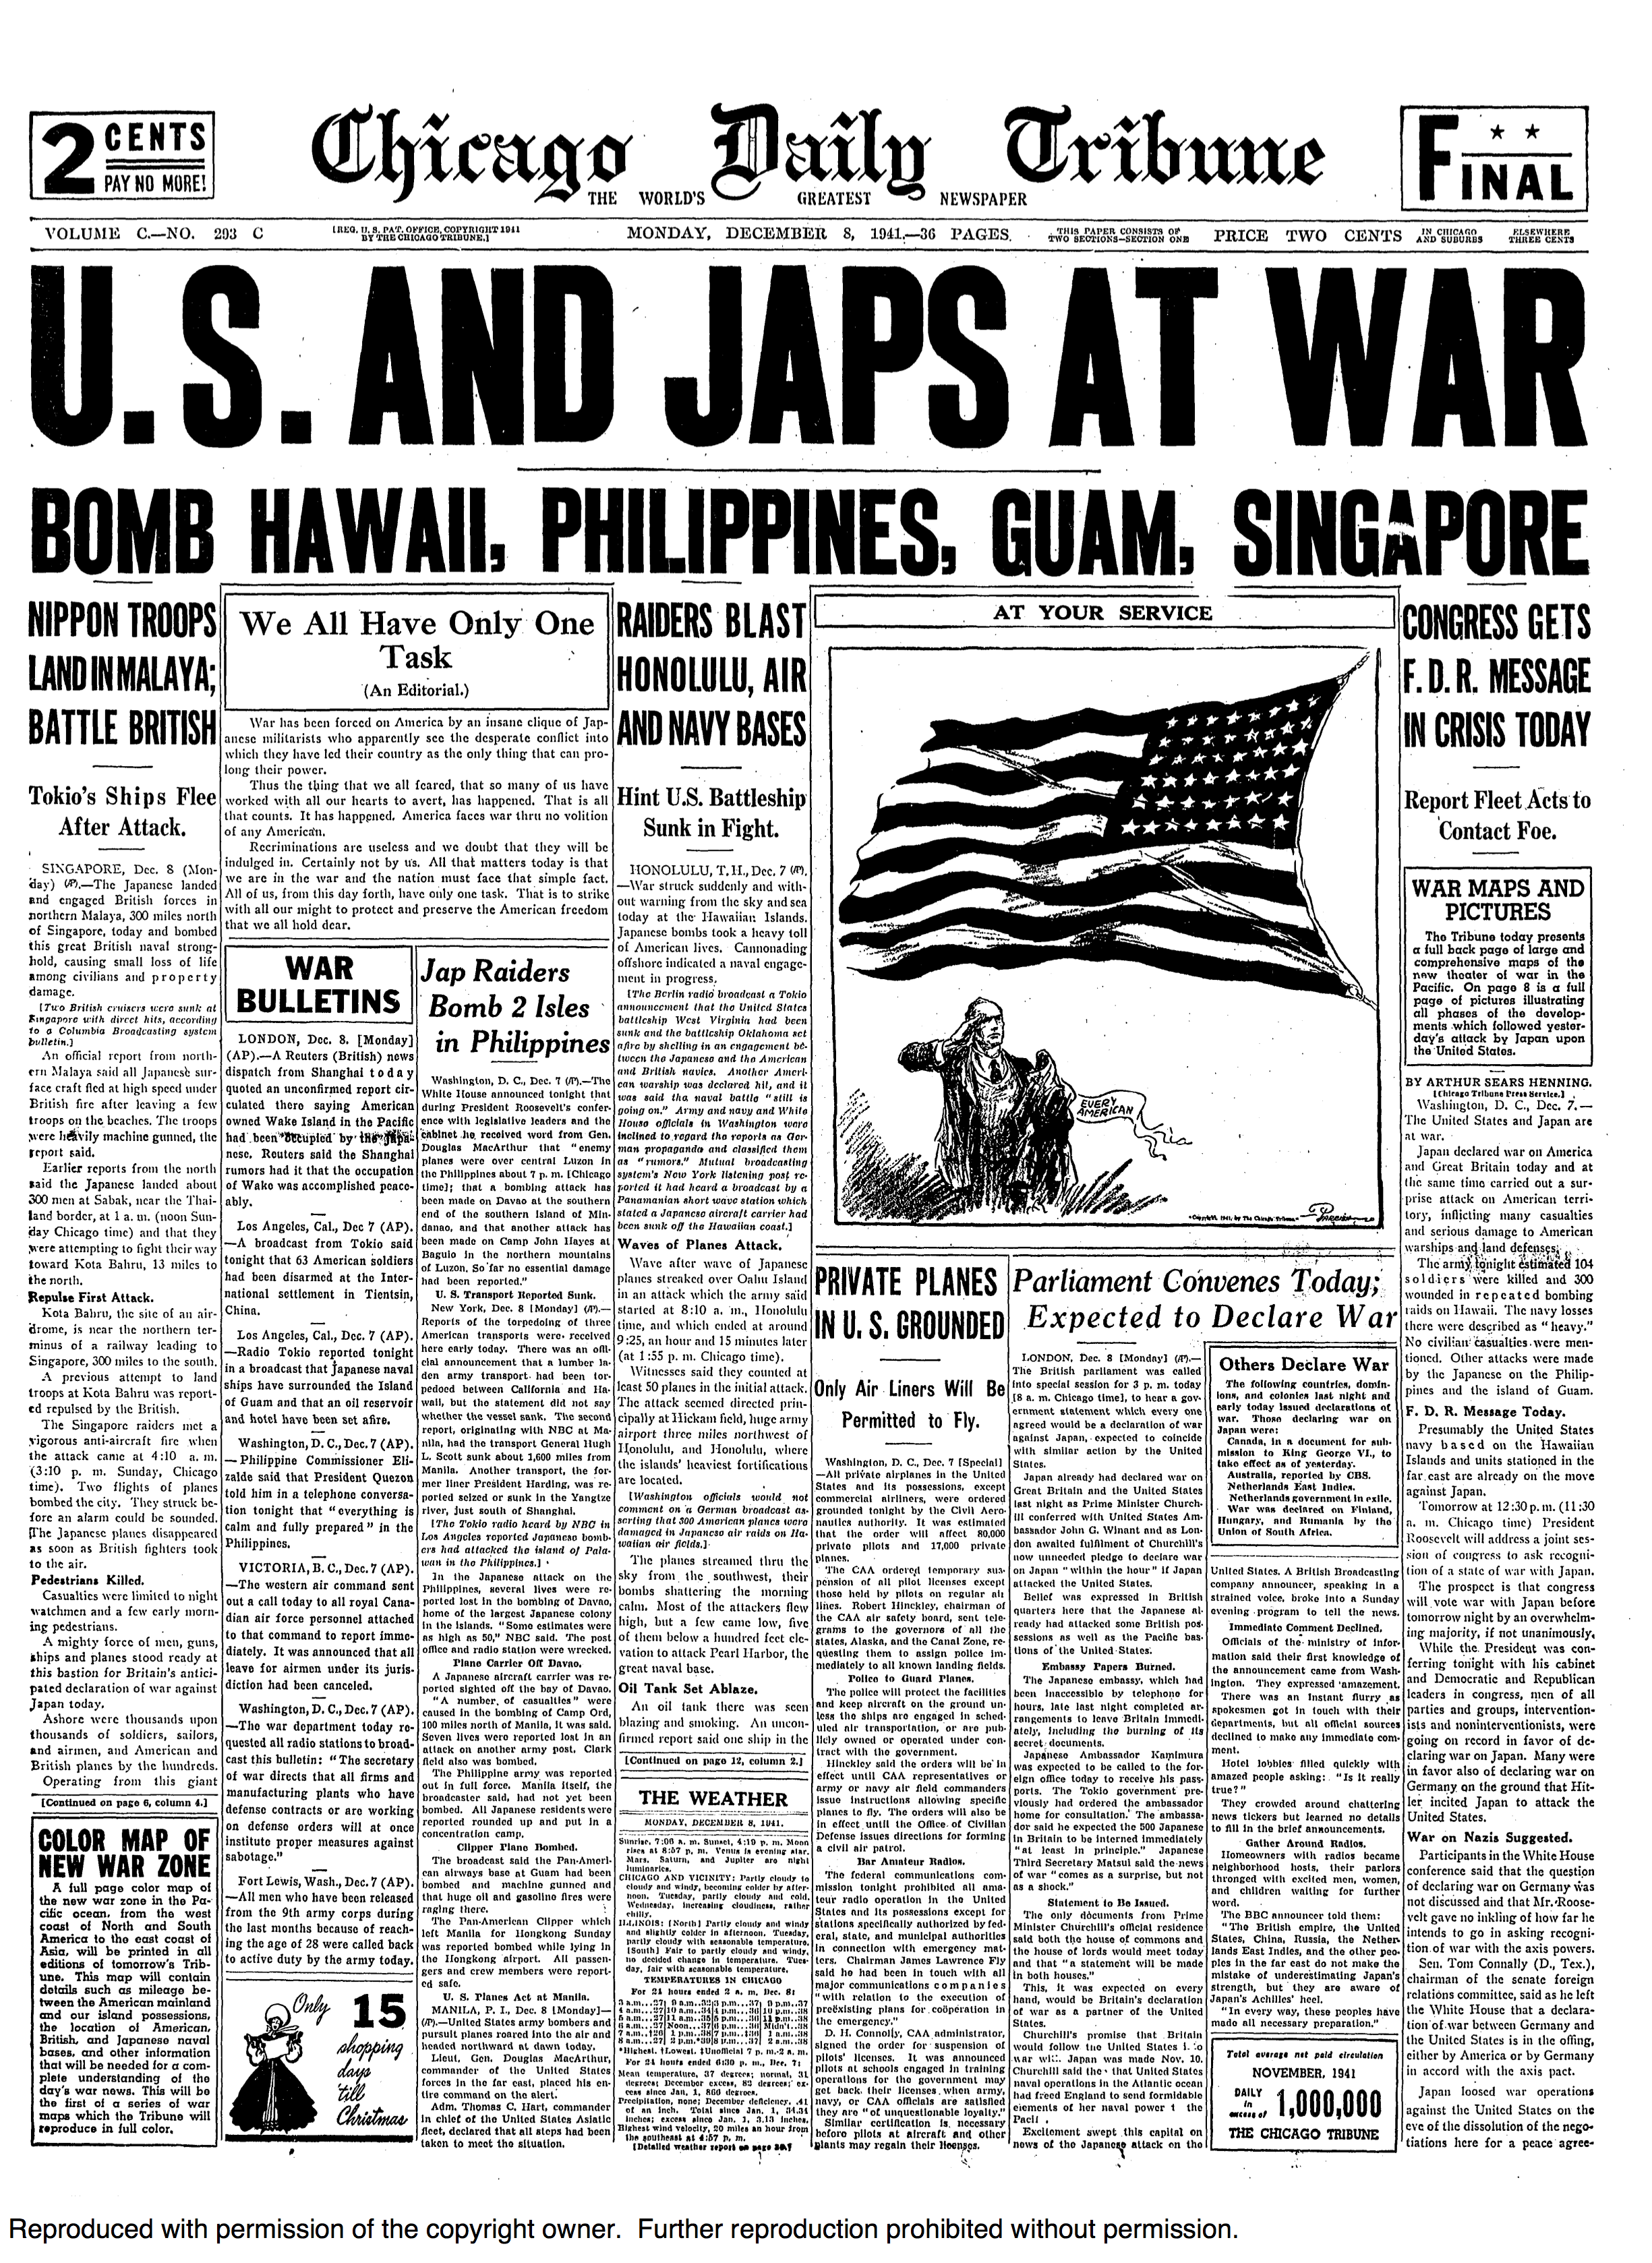 Papers on pearl harbor